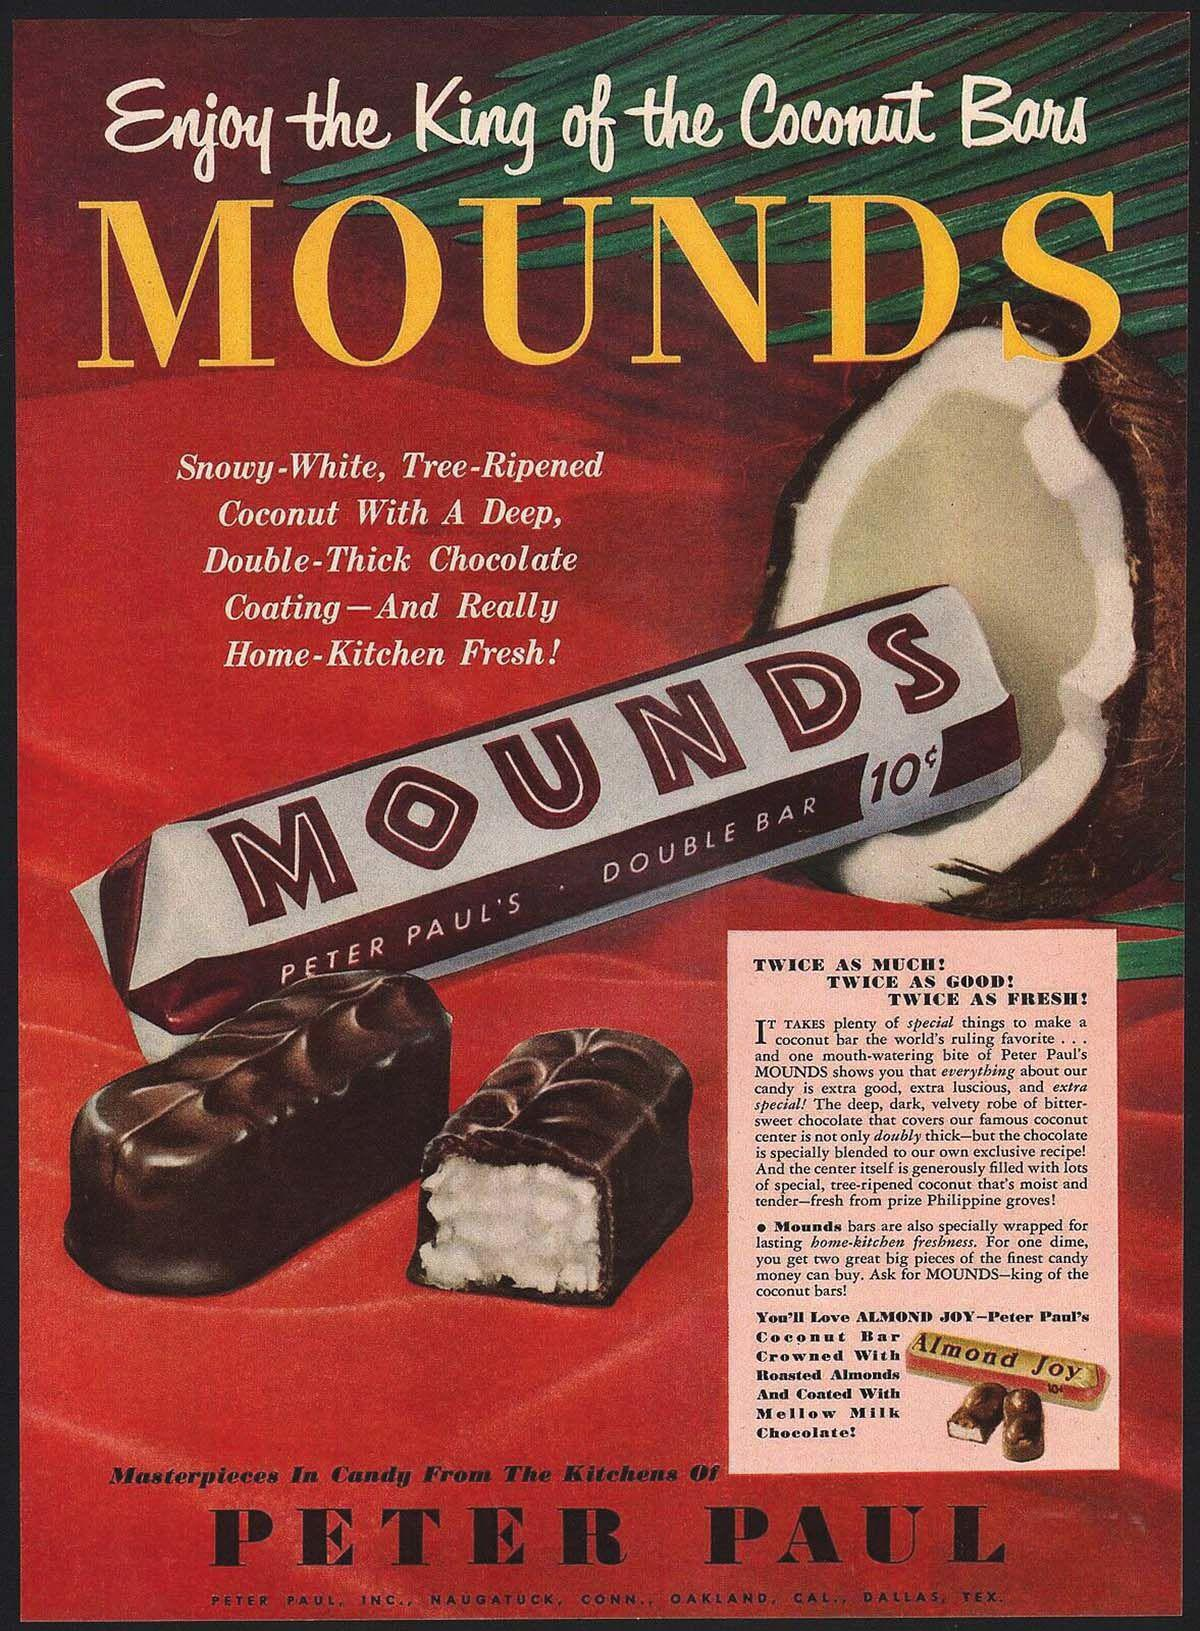 mounds 1950s ad.jpg